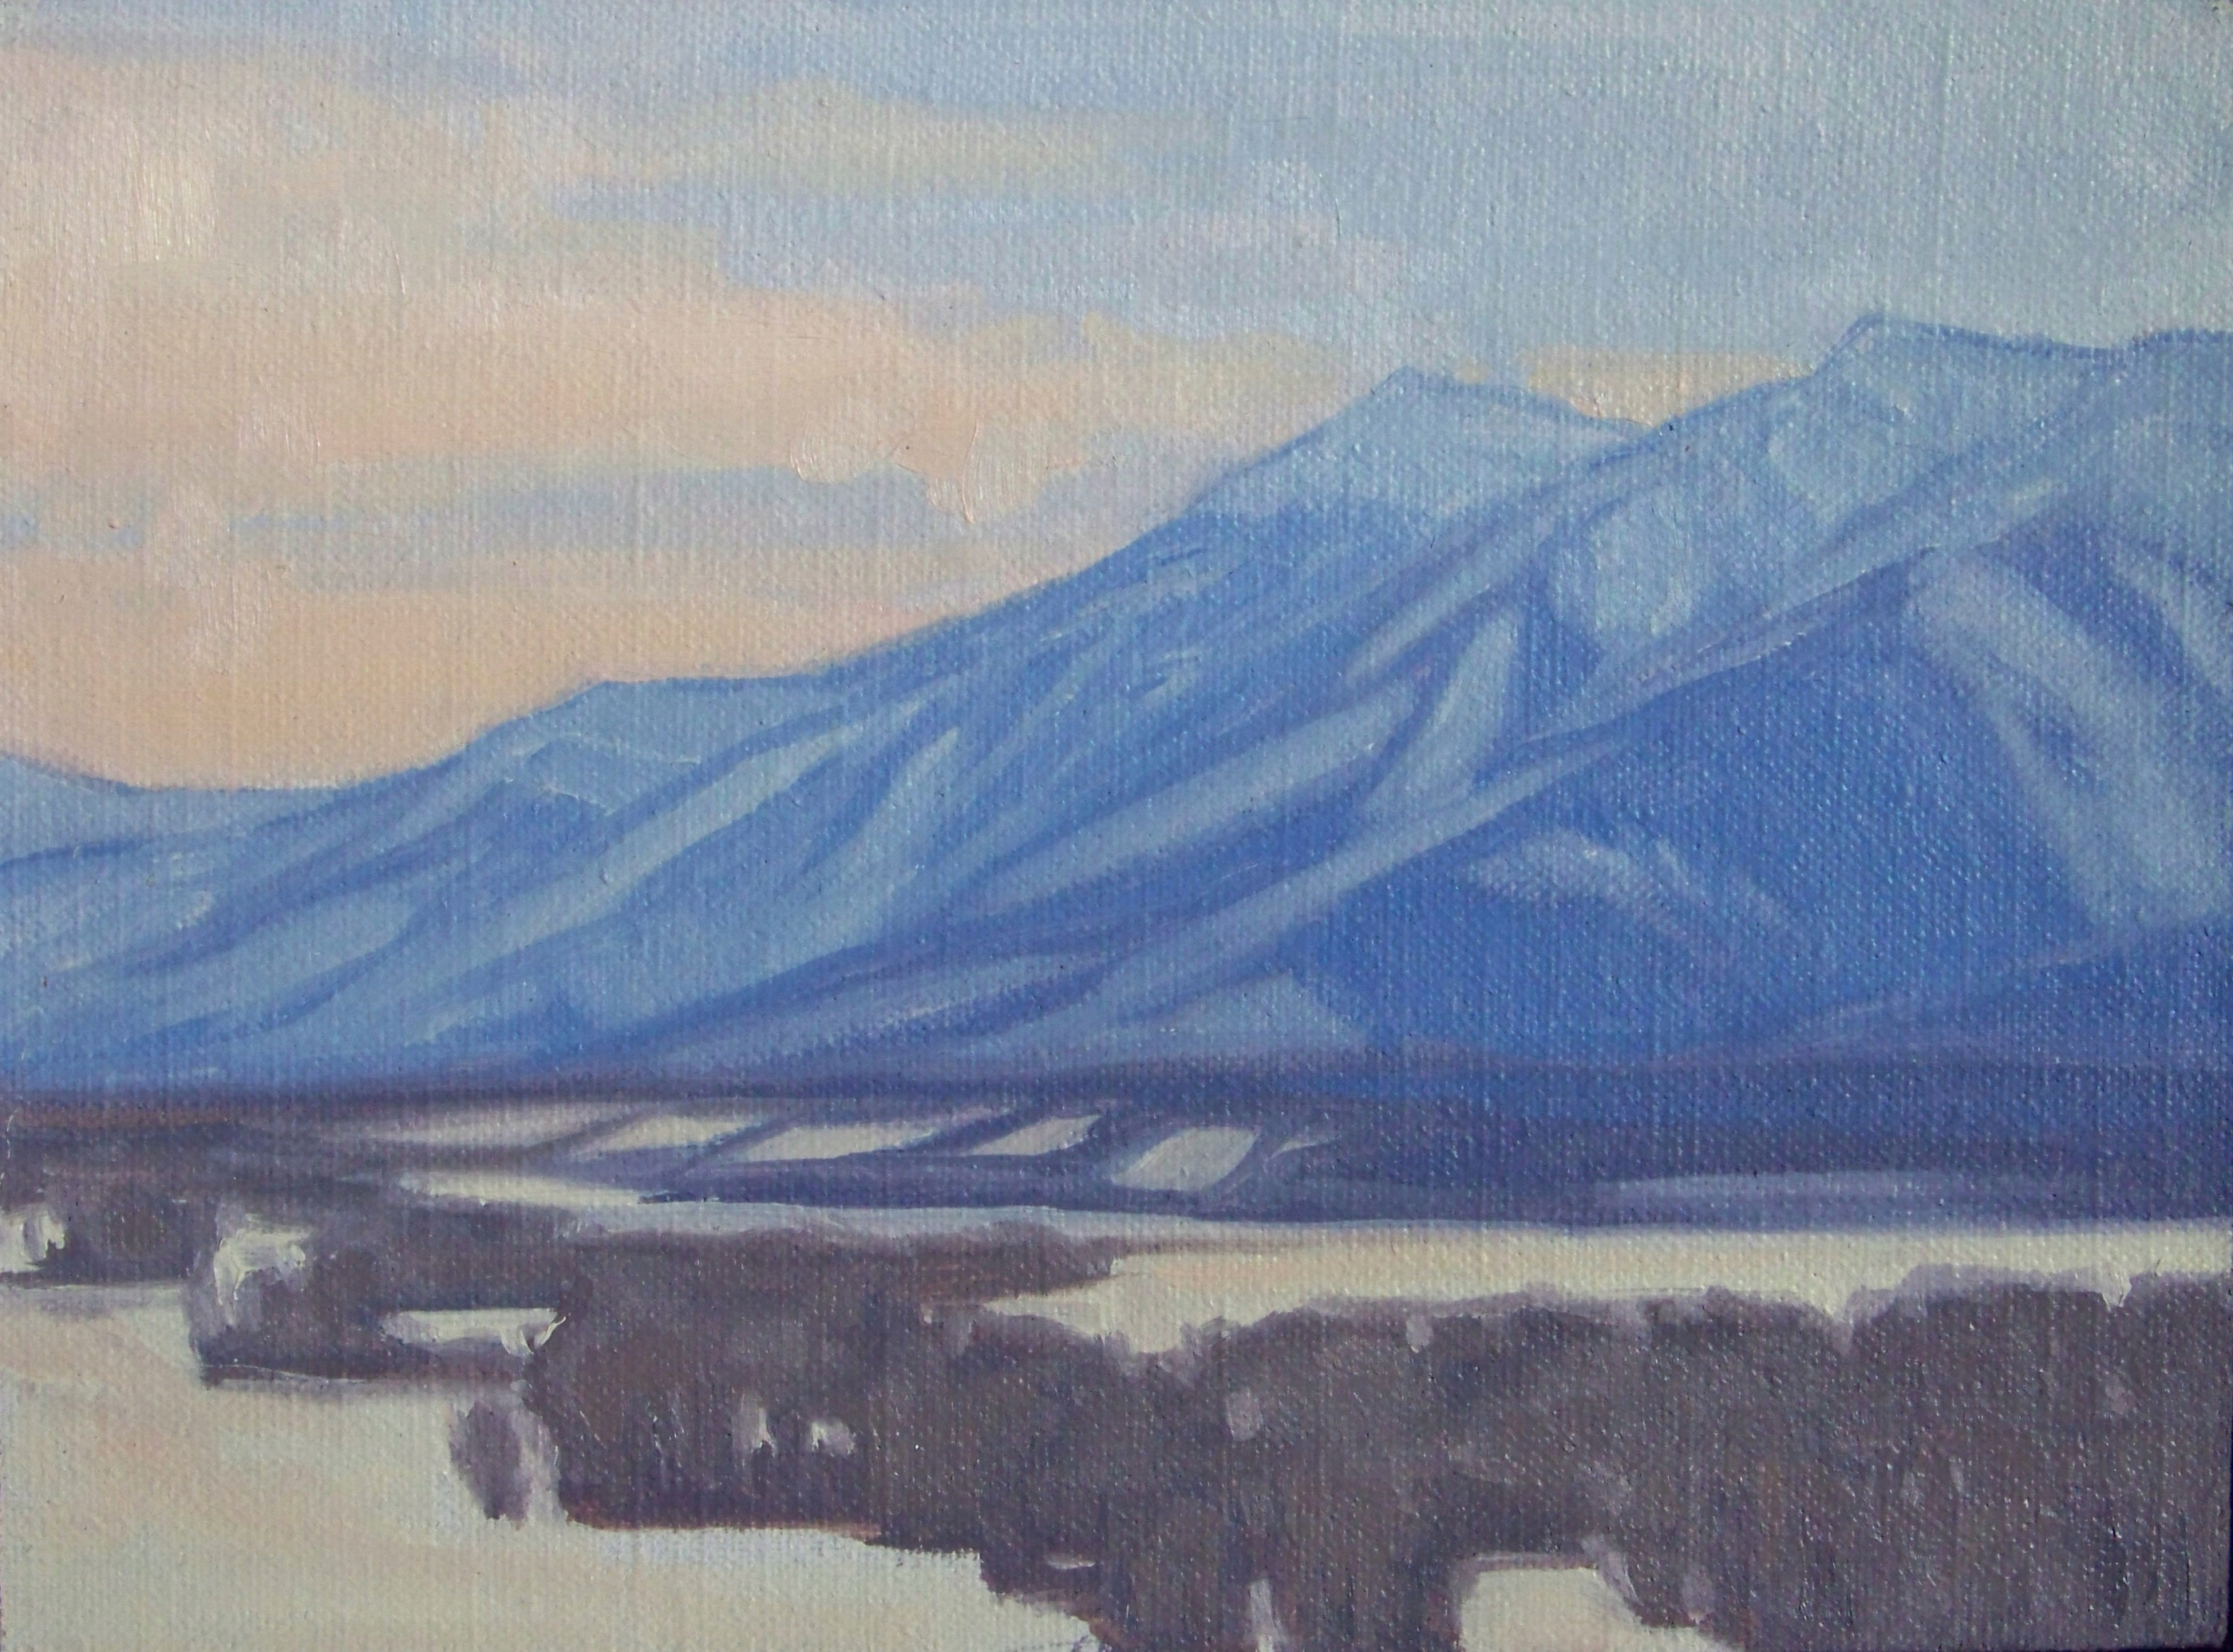 Winter Blues, 6x8, oil on linen